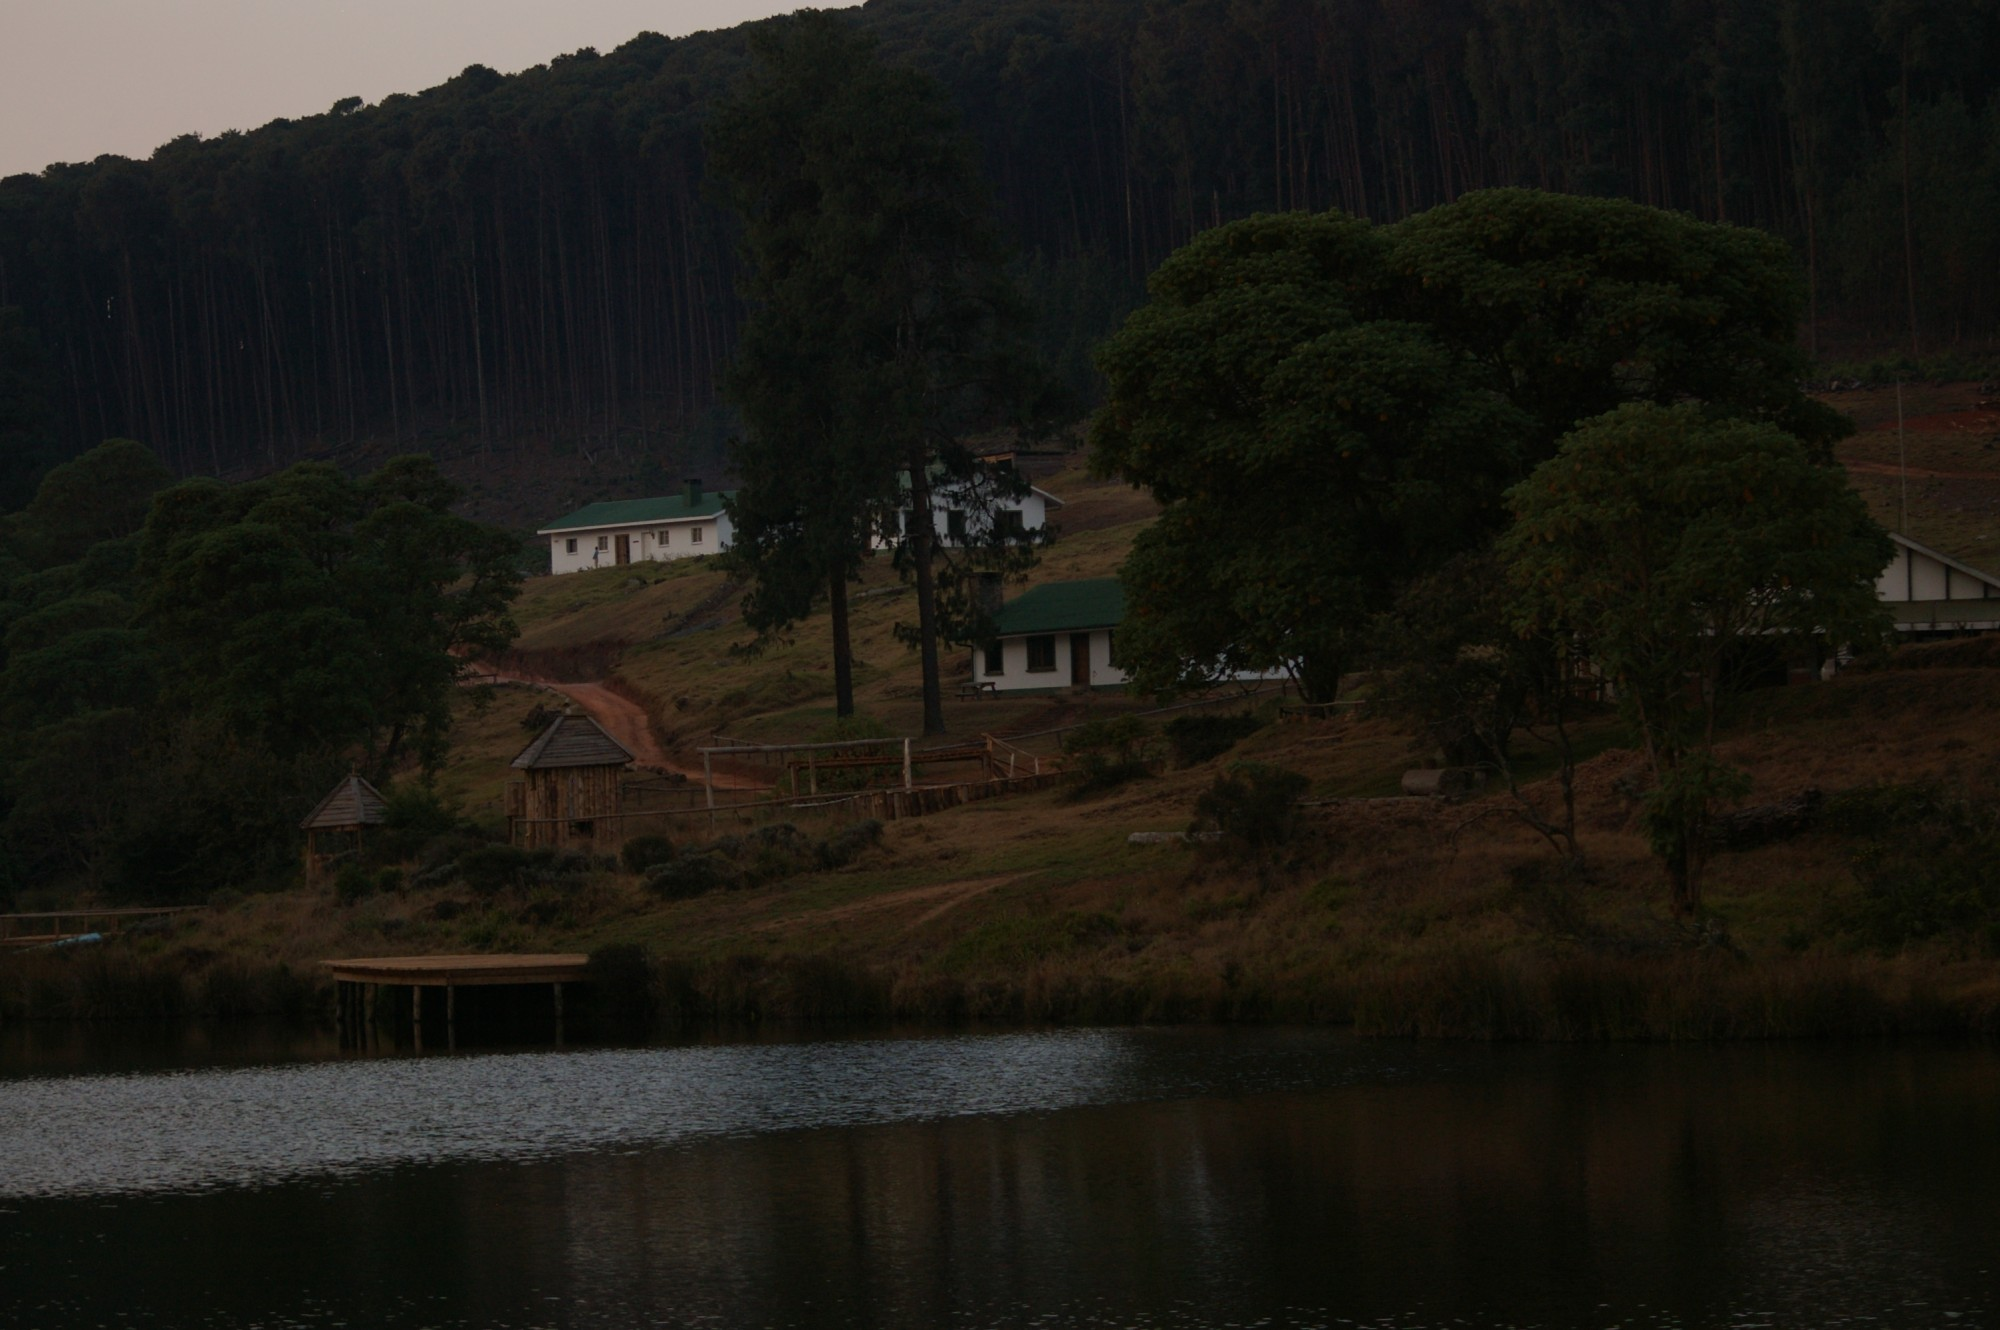 Chelinda Camp in Nyika National Park in Malawi